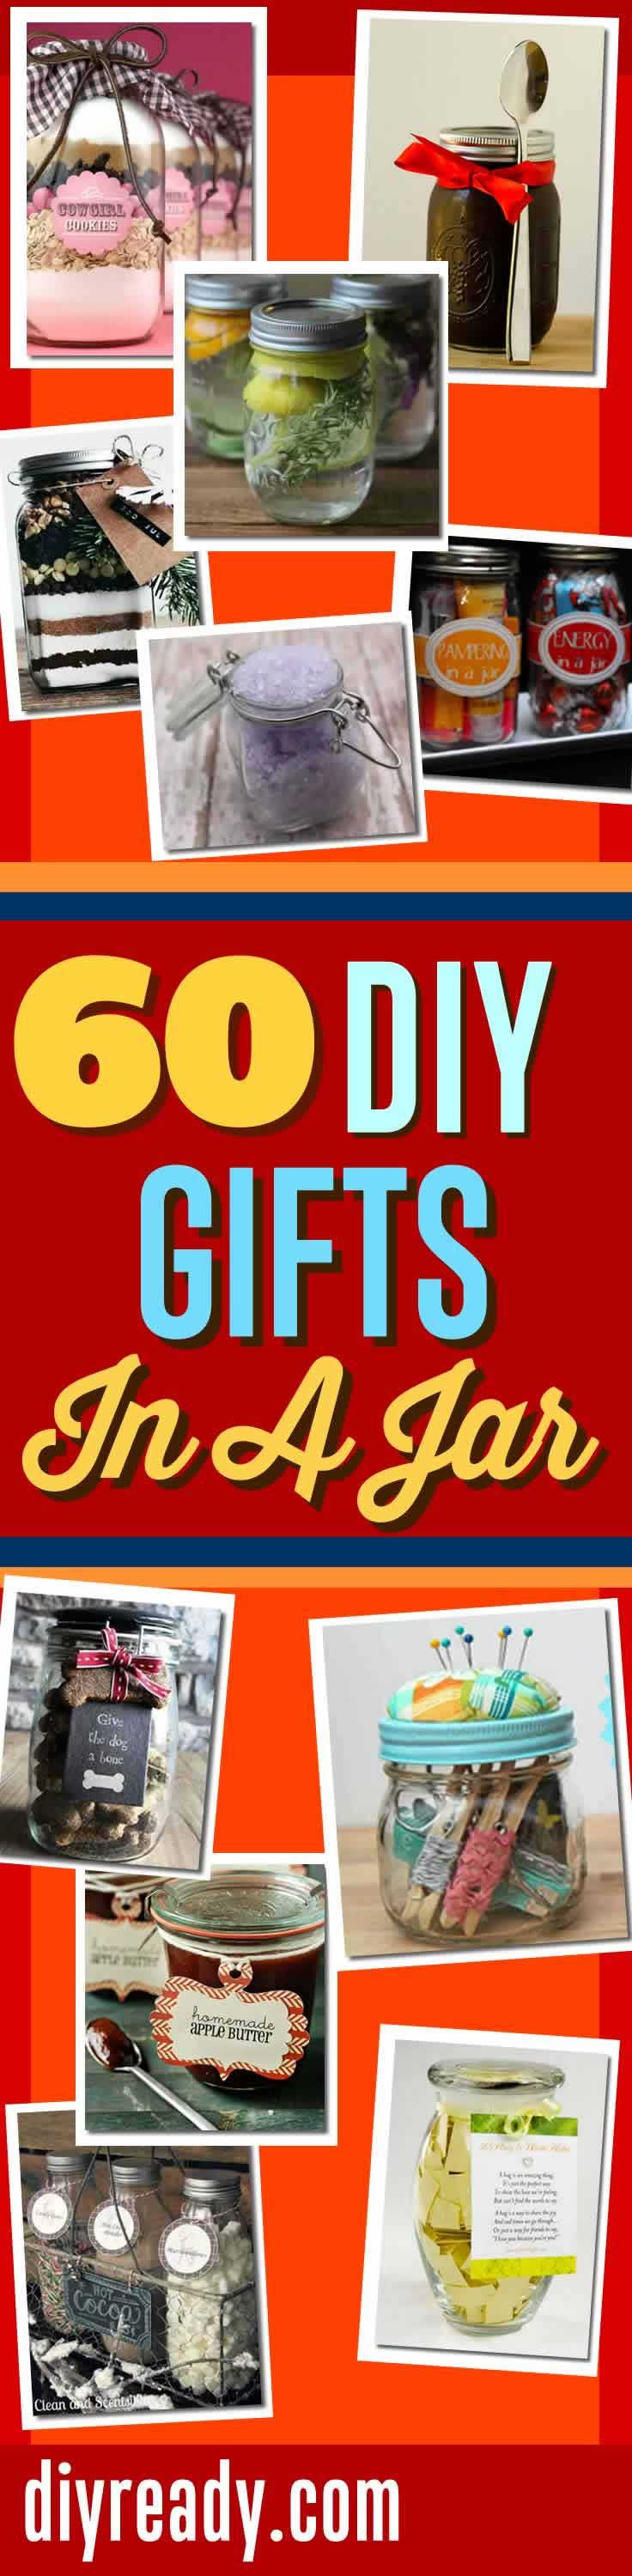 DIY Gifts In A Jar | Mason Jar Gift Ideas and DIY Christmas Gifts http://diyready.com/60-cute-and-easy-diy-gifts-in-a-jar-christmas-gift-ideas/